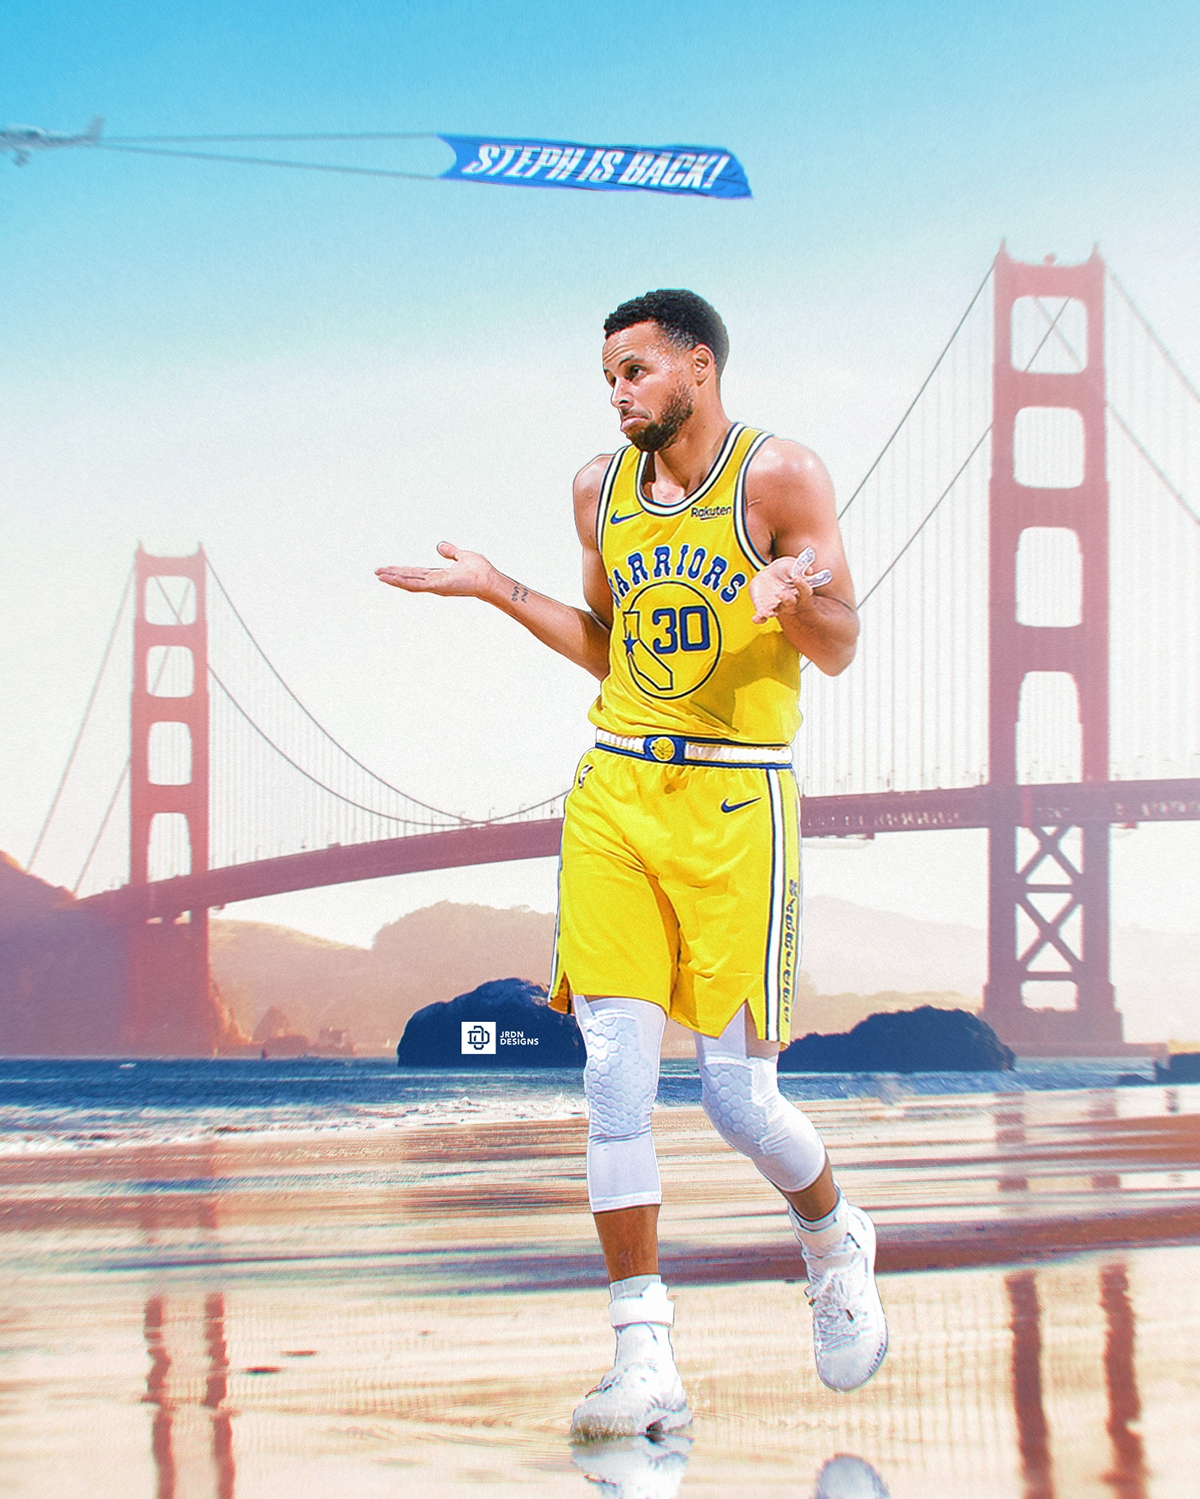 Stephen Curry Graphics For His Return Nba On Behance Stephen Curry Basketball Stephen Curry Stephen Curry Wallpaper